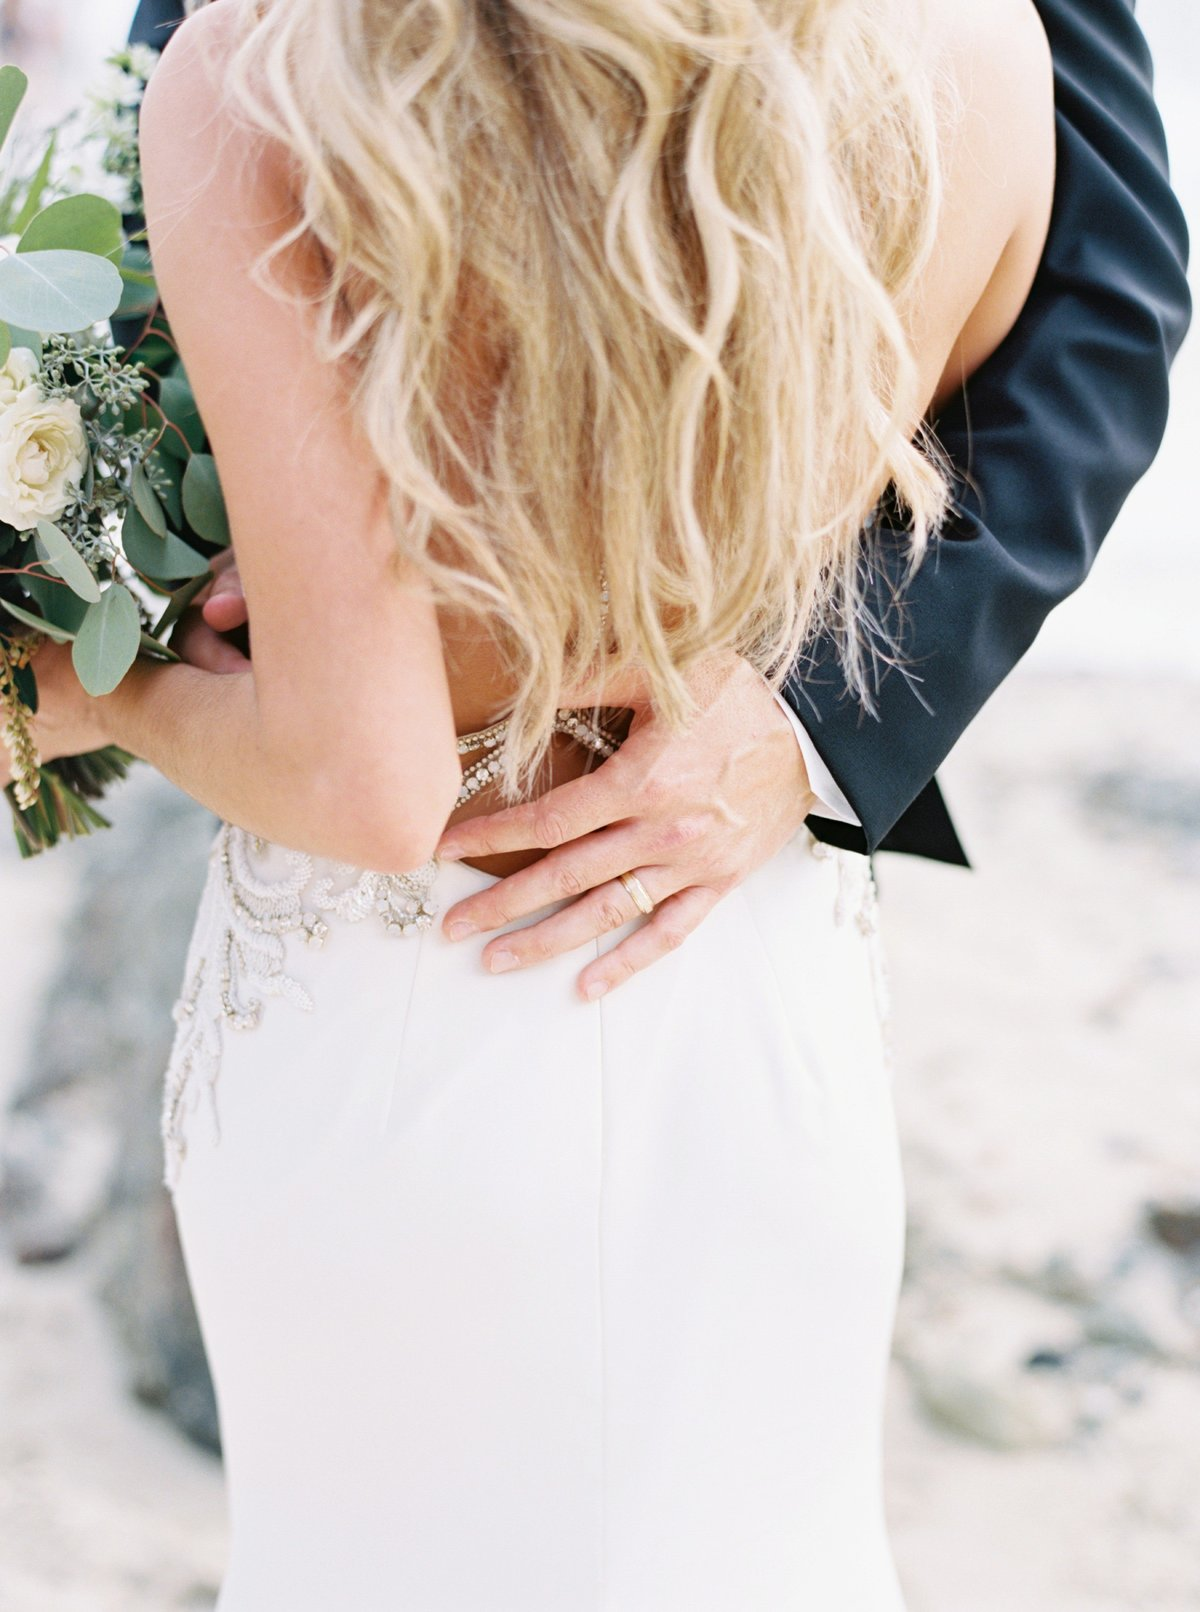 nicoleclareyphotography_evan+jeff_laguna beach_wedding_0016